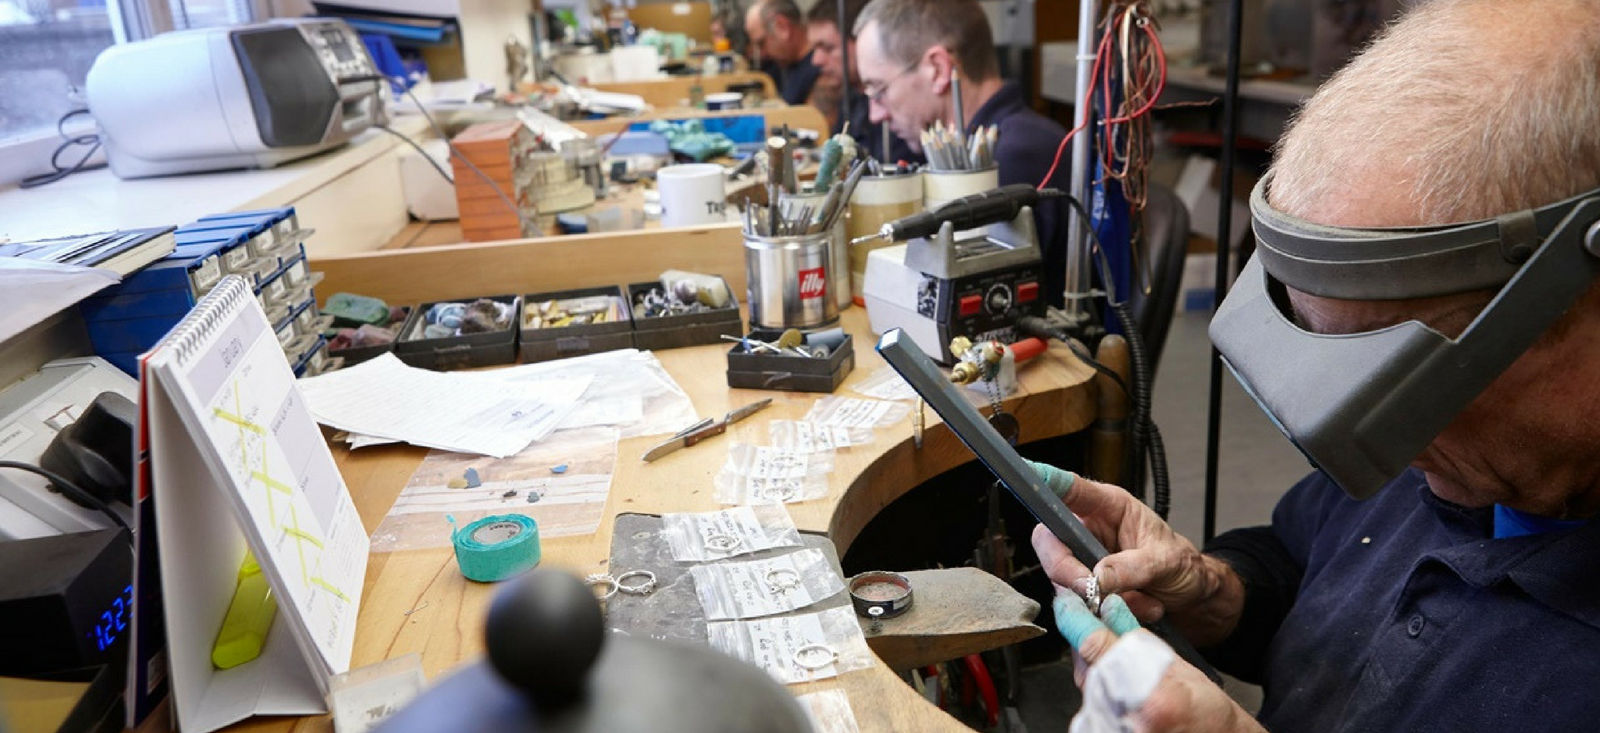 Hockley Mint The William Agency Copywriting Client 2018 - Craftsmen working at the Bench in Birmingham's Jewellery Quarter